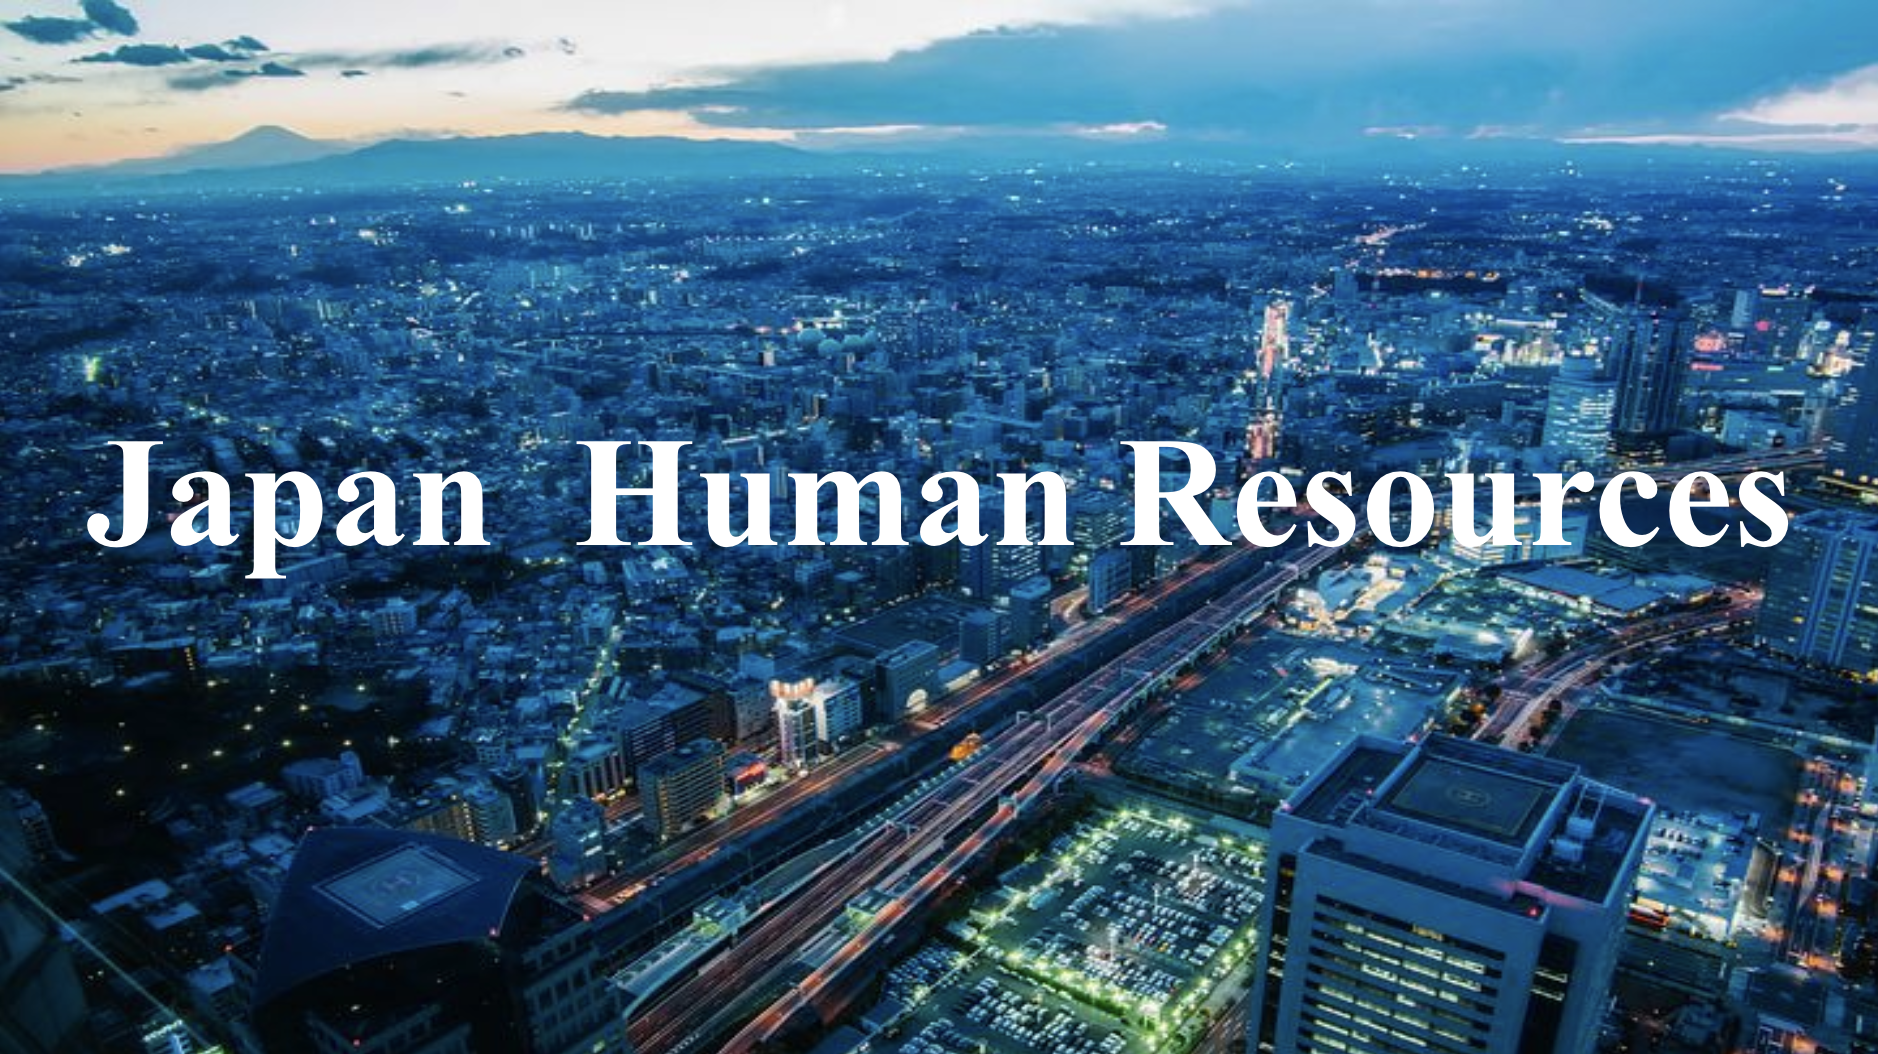 Japan Human Resources